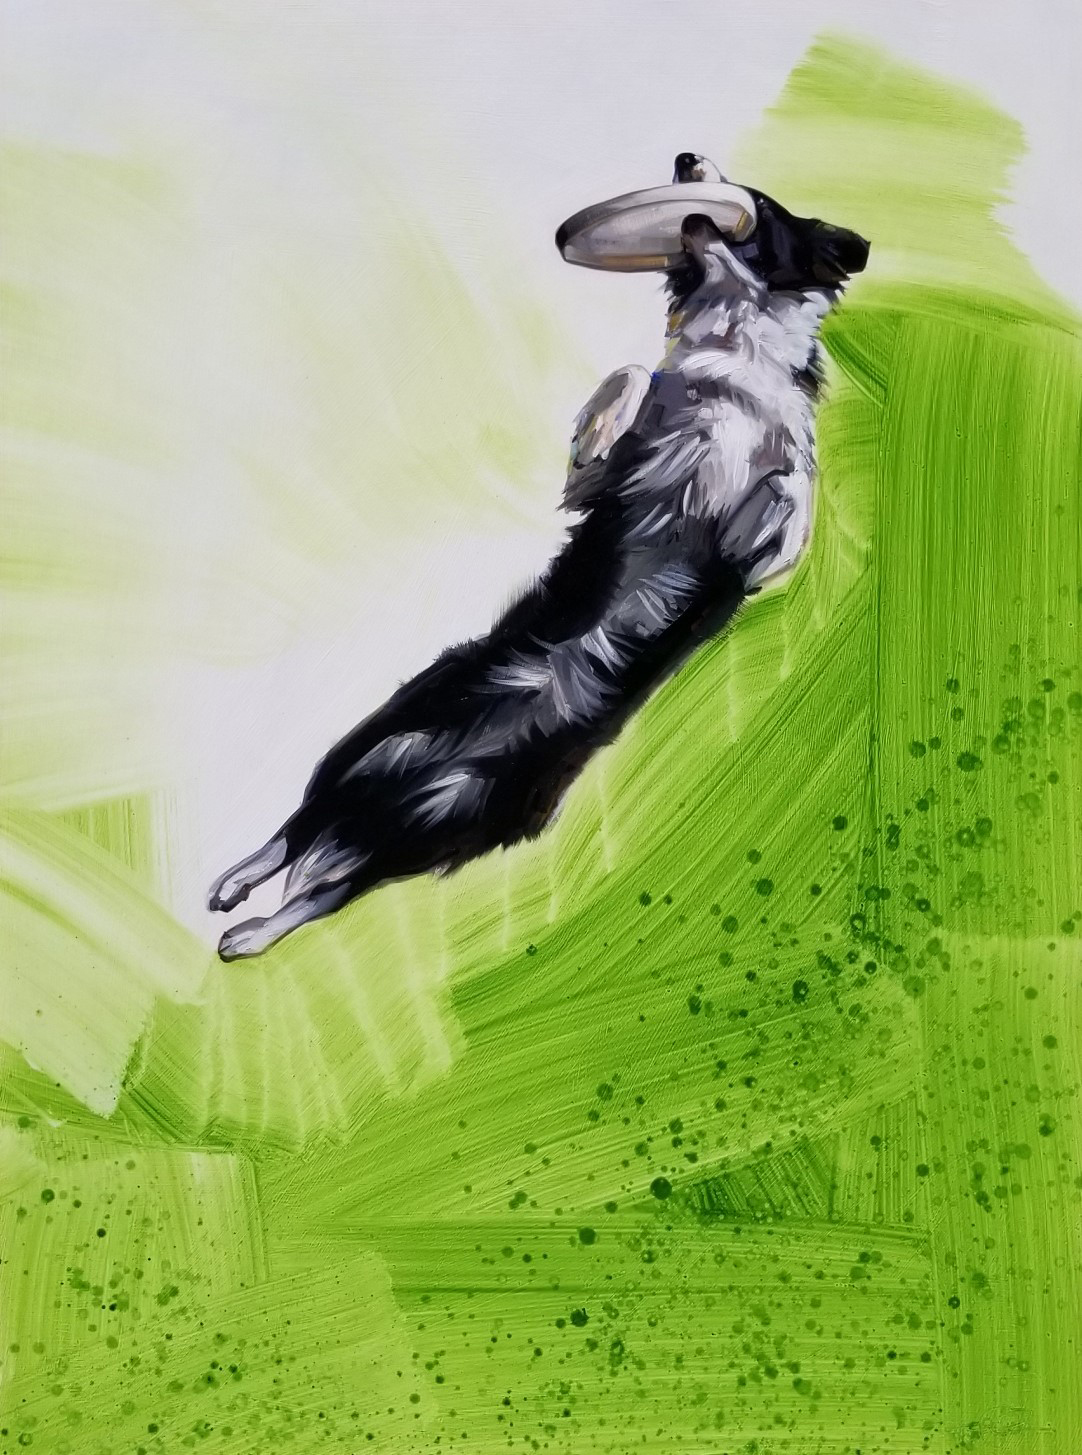 oil painting of dog, frisbee catch, border collie